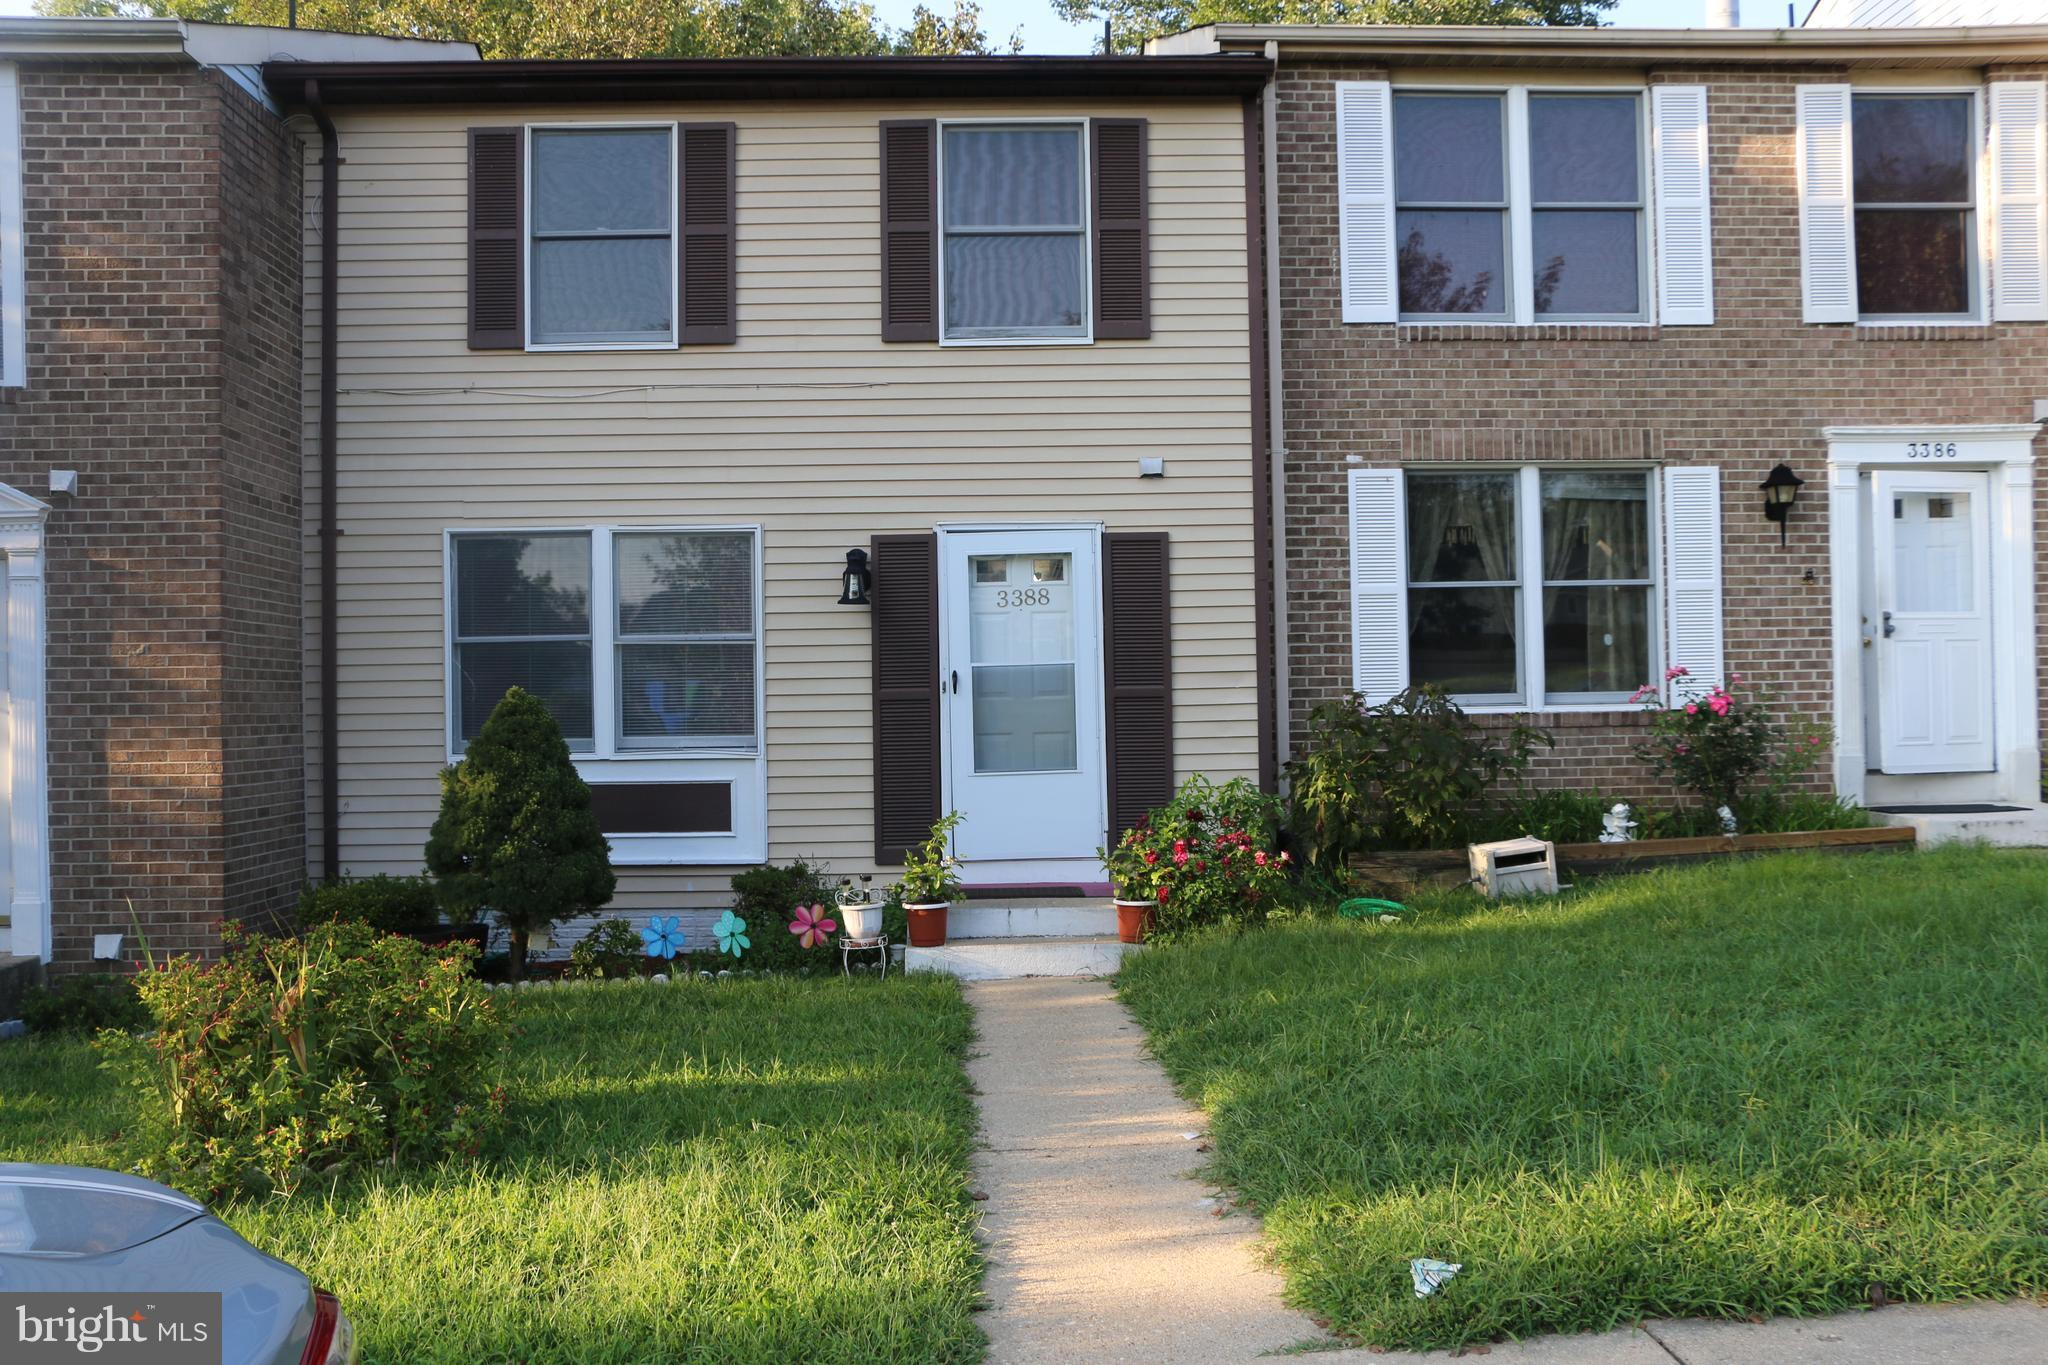 **3 level nice townhouse with 3 bedrooms and 2 full 2 half bath, **First floor nice hardwood floor, separate dining room** Walk up to nice and private fully fenced back yard*** Sellers have to find a choice of house, but very serious and motivated. close to PW County Parkway and 95. Close to Potomac Mills and lots of shops and restaurants. Call Owner to Show and bring offer